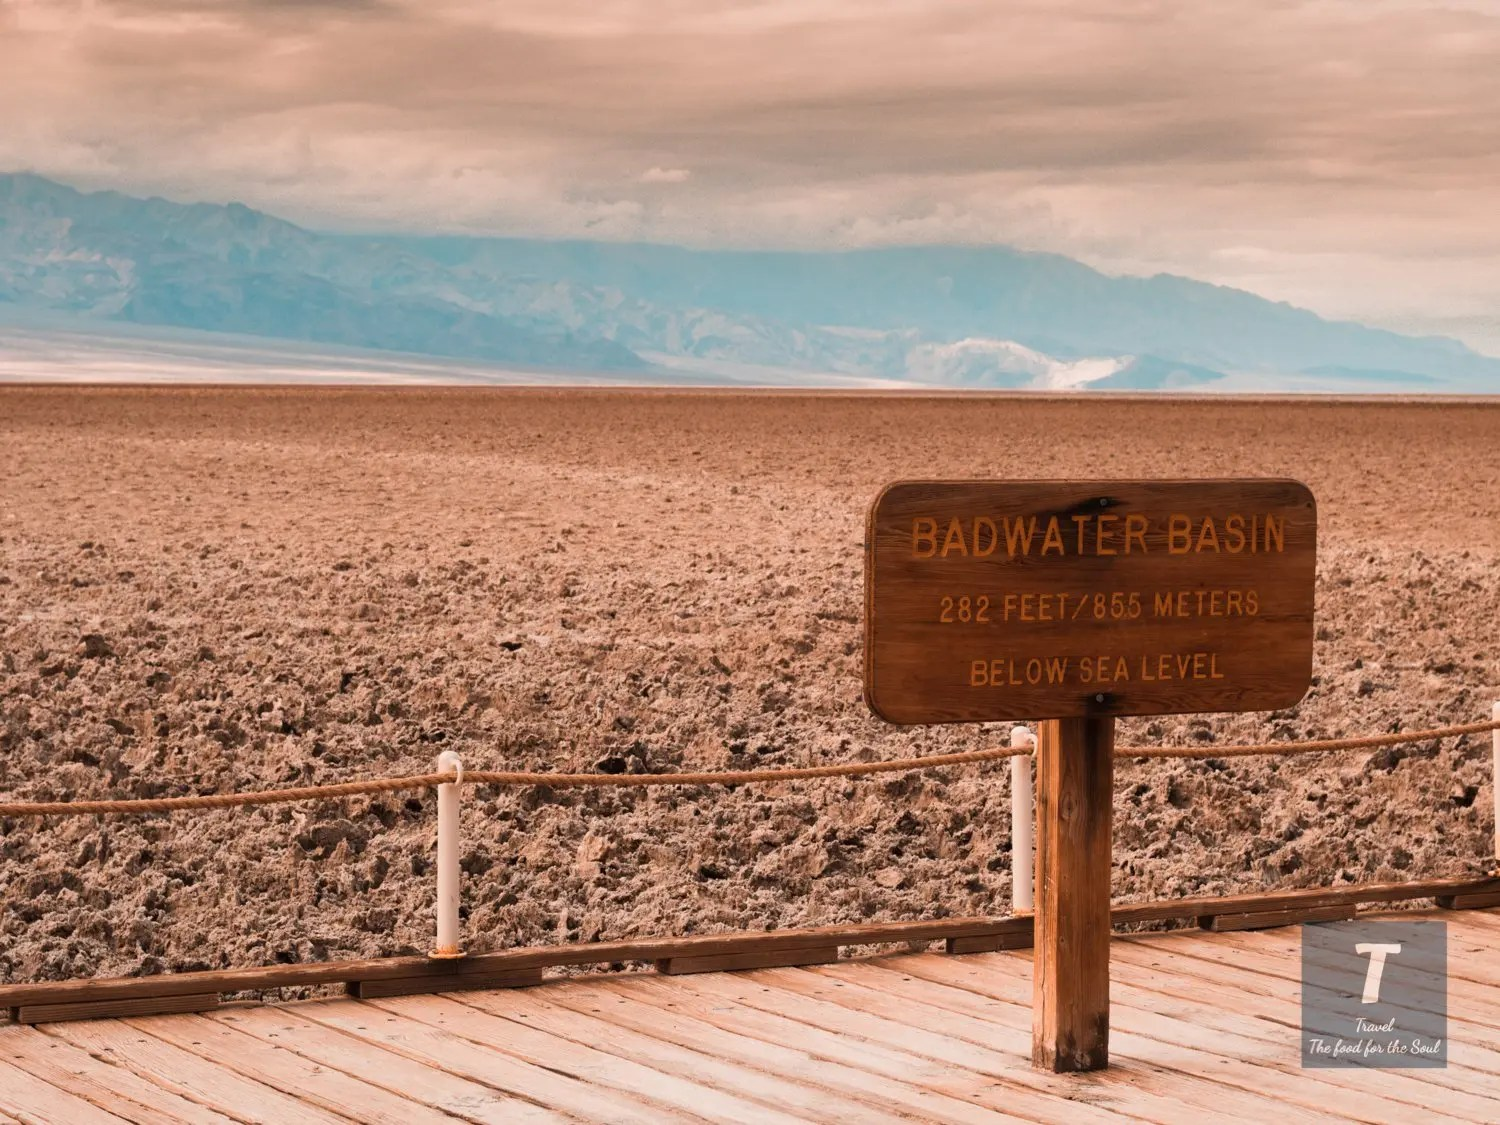 Death Valley National Park Badwater Basin | Death Valley National Park Travel Guide